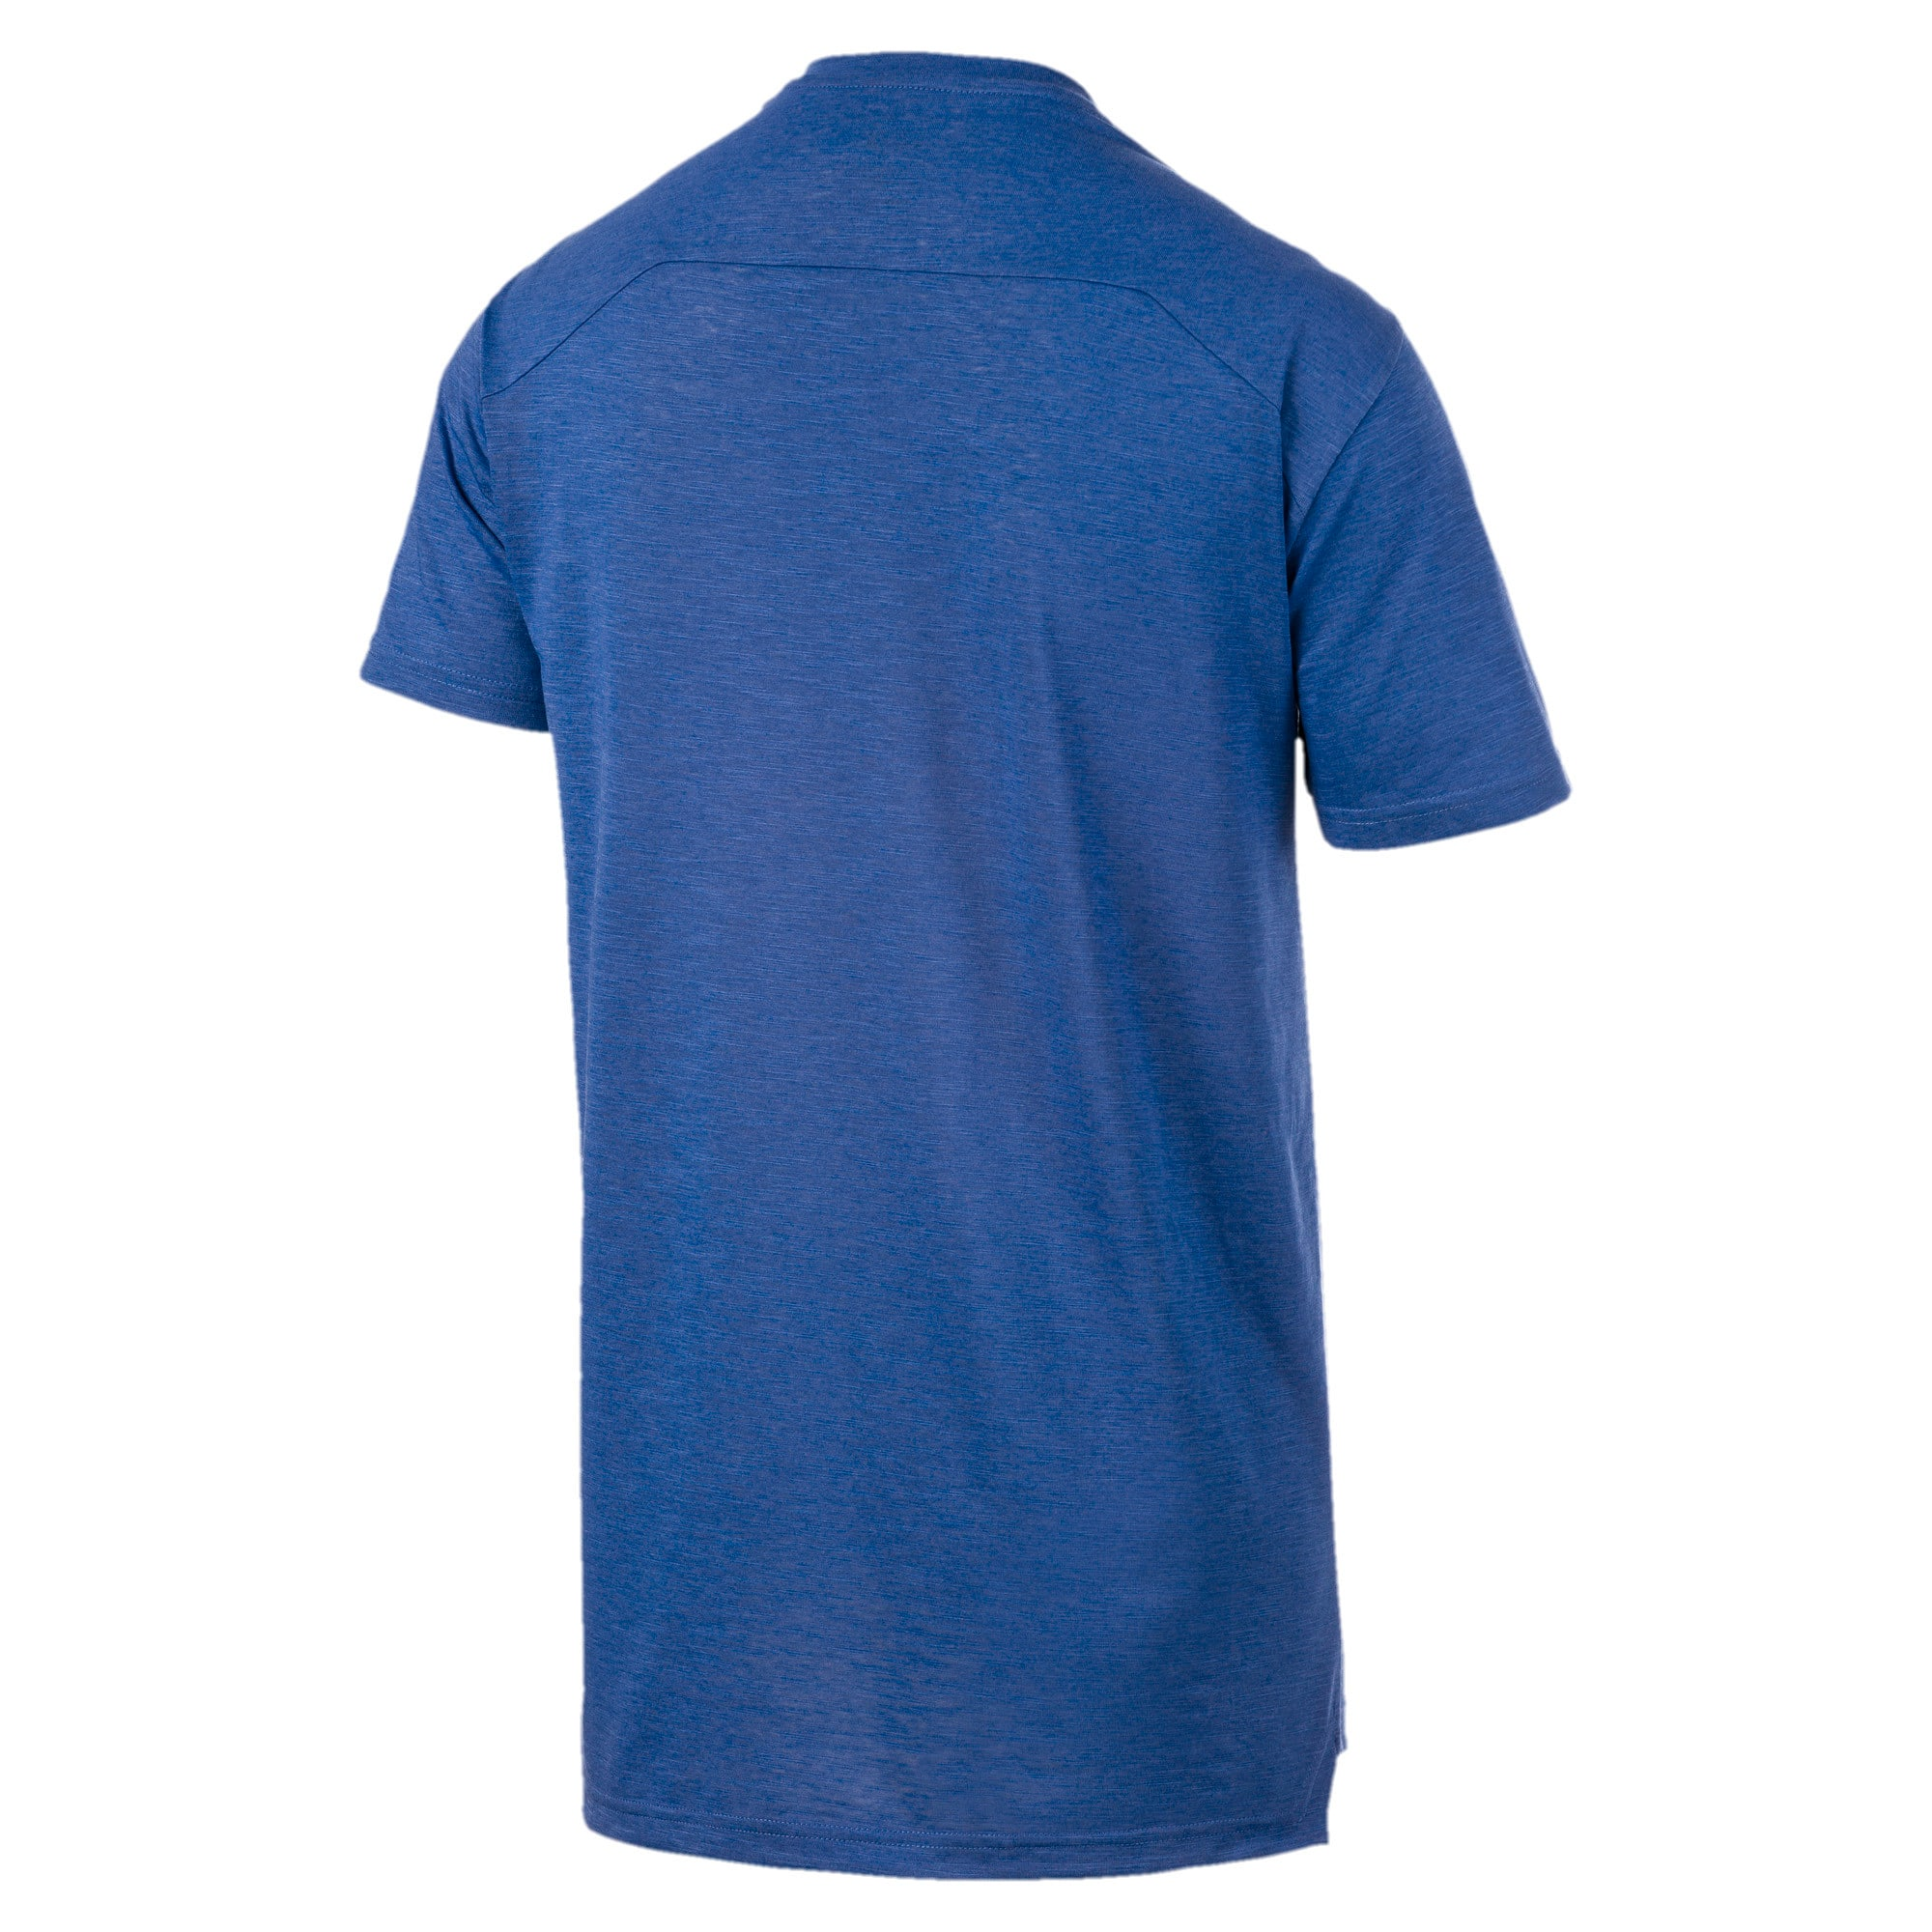 Energy Short Sleeve Men's Training Tee, Galaxy Blue Heather, large-IND